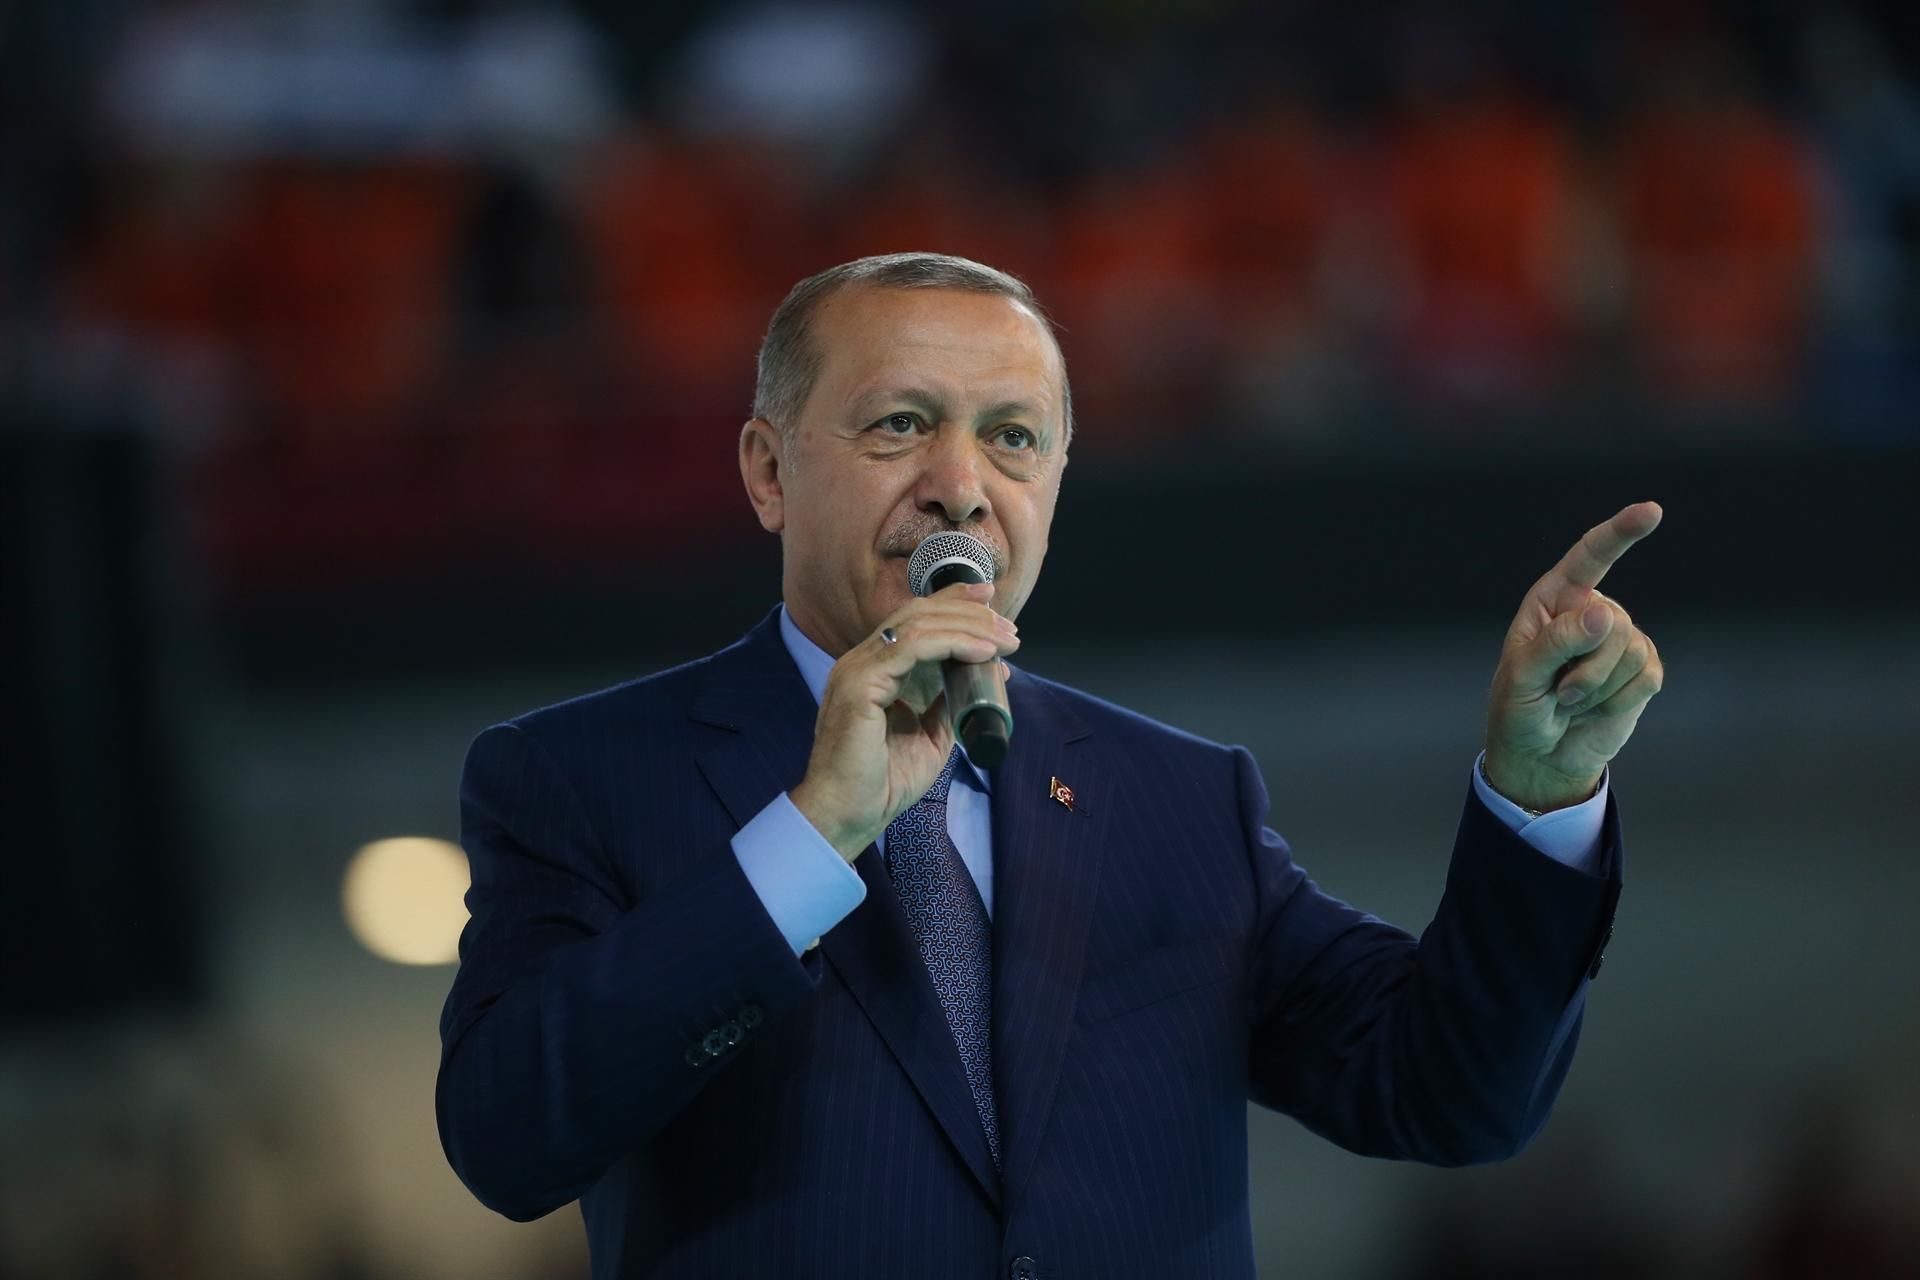 Erdogan will pay an official visit to Germany on Sept. 28-29